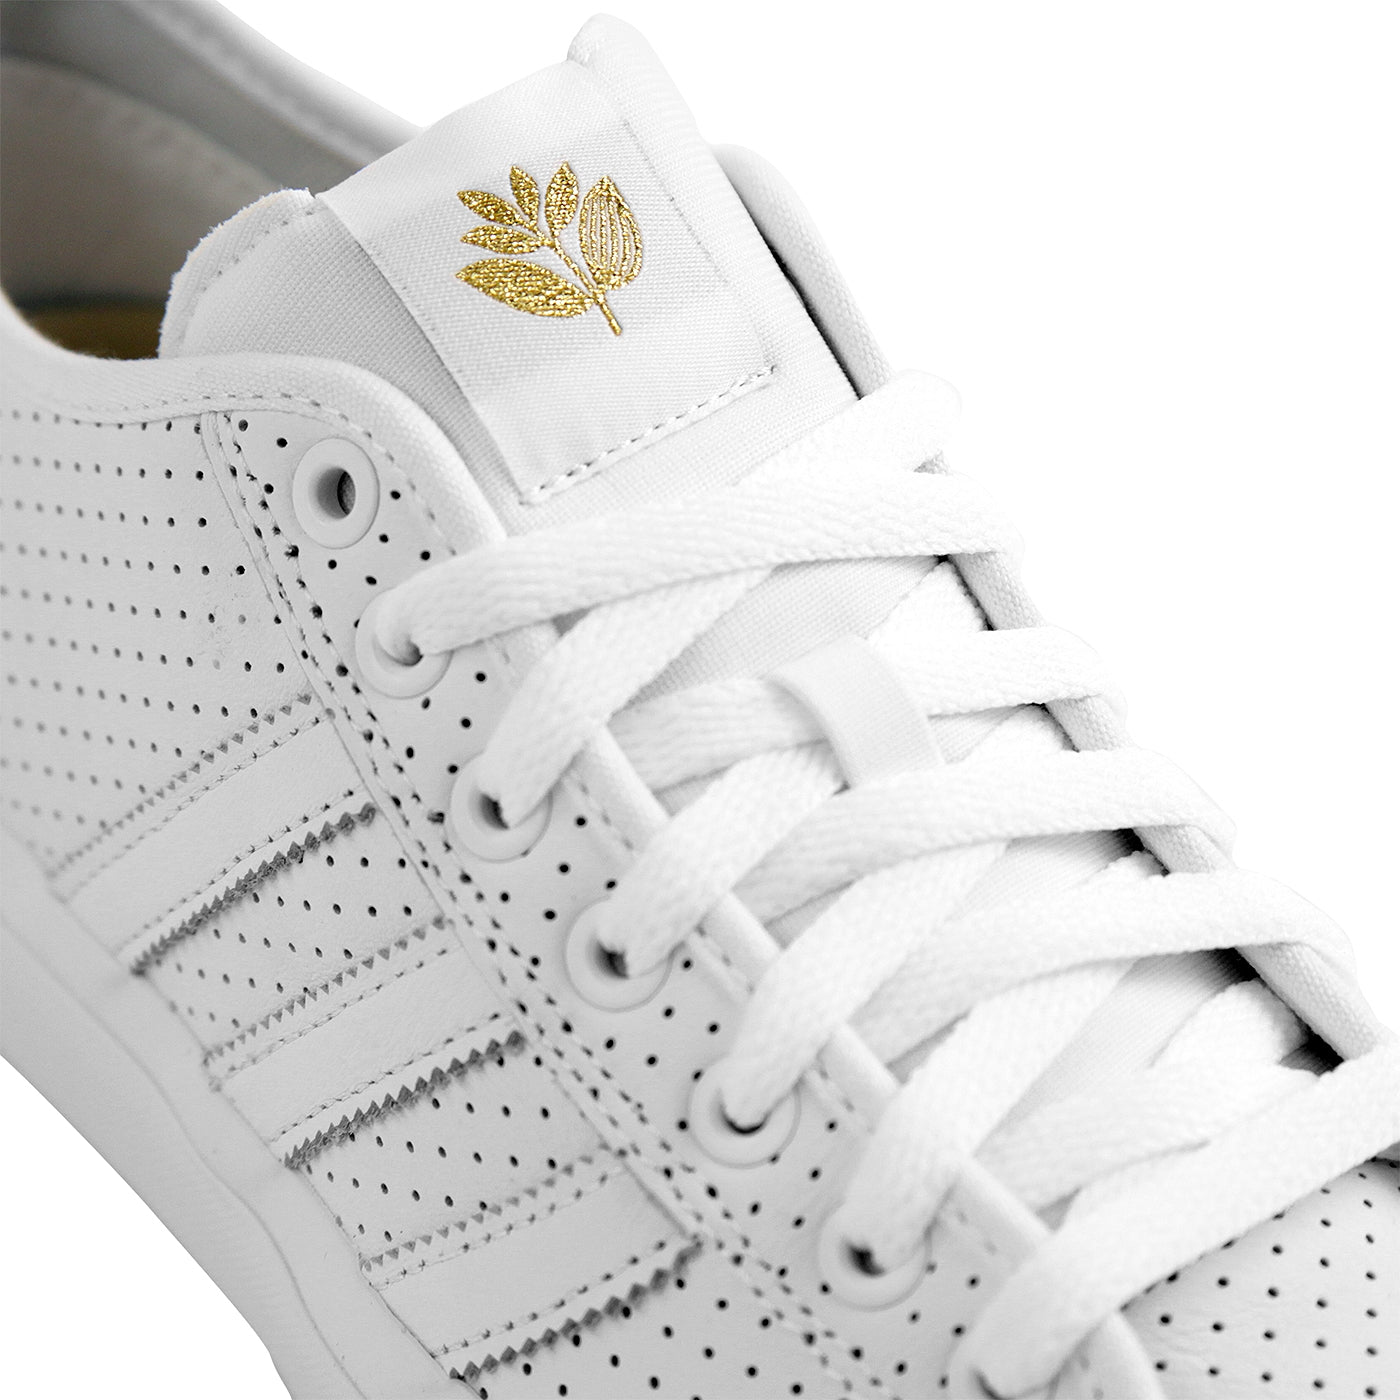 online store f7cc8 8ab20 Adidas x Magenta Skateboards Matchcourt RX Shoes - White   Gold Metallic    Gum. Size Charts